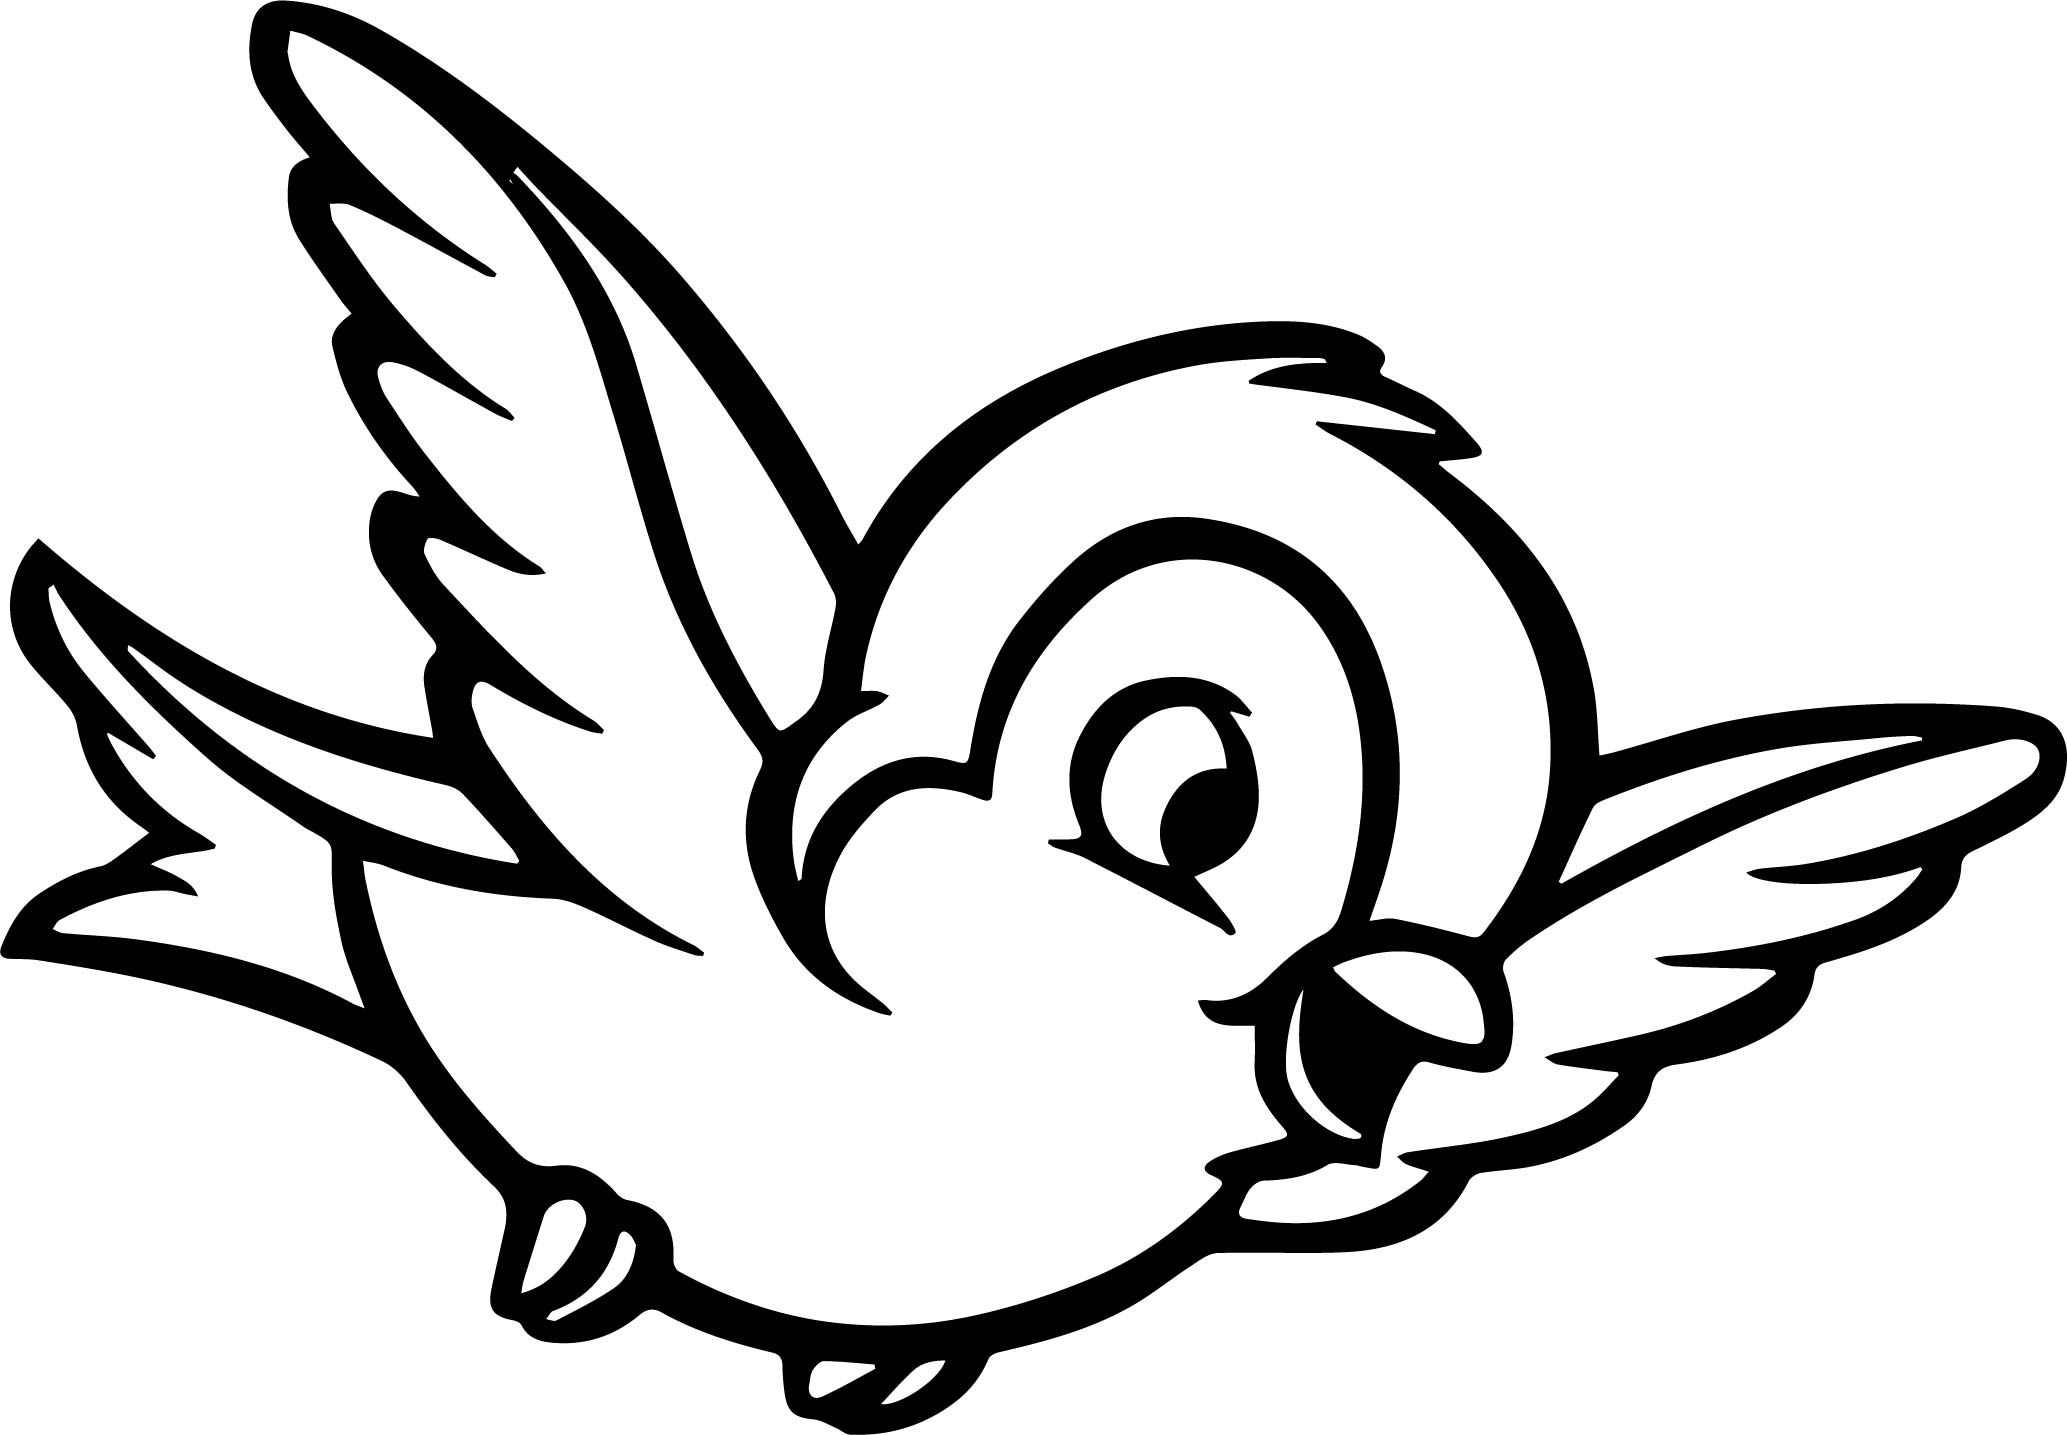 bird colouring pictures cute bird coloring page for kids tsgoscom colouring bird pictures